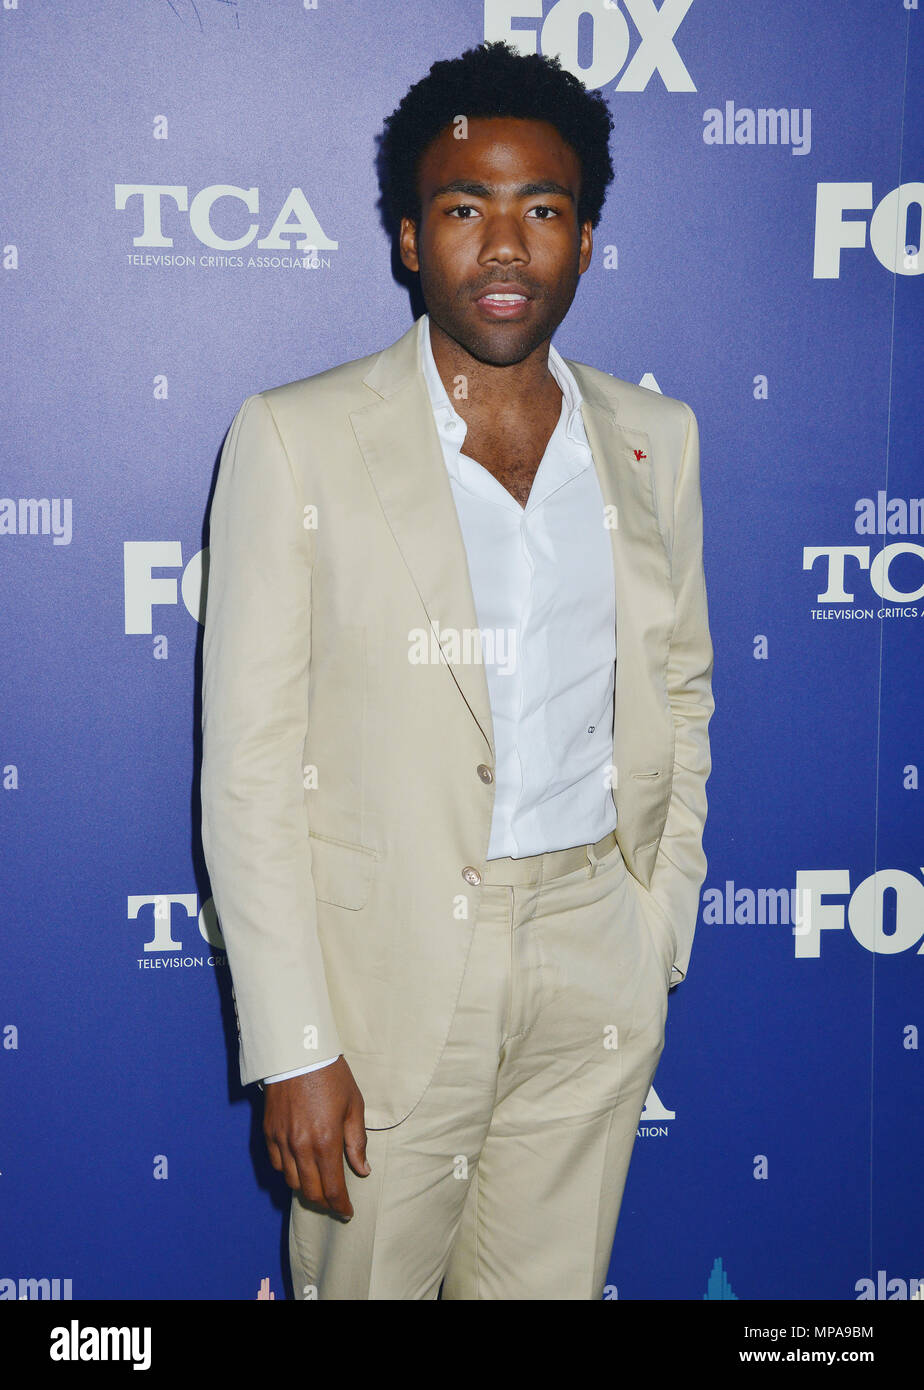 Donald Glover at the FOX Summer TCA Press Tour on August 8, 2016 at the Soho Club  in Los Angeles,Donald Glover ------------- Red Carpet Event, Vertical, USA, Film Industry, Celebrities,  Photography, Bestof, Arts Culture and Entertainment, Topix Celebrities fashion /  Vertical, Best of, Event in Hollywood Life - California,  Red Carpet and backstage, USA, Film Industry, Celebrities,  movie celebrities, TV celebrities, Music celebrities, Photography, Bestof, Arts Culture and Entertainment,  Topix, Three Quarters, vertical, one person,, from the year , 2016, inquiry tsuni@Gamma-USA.com - Stock Image